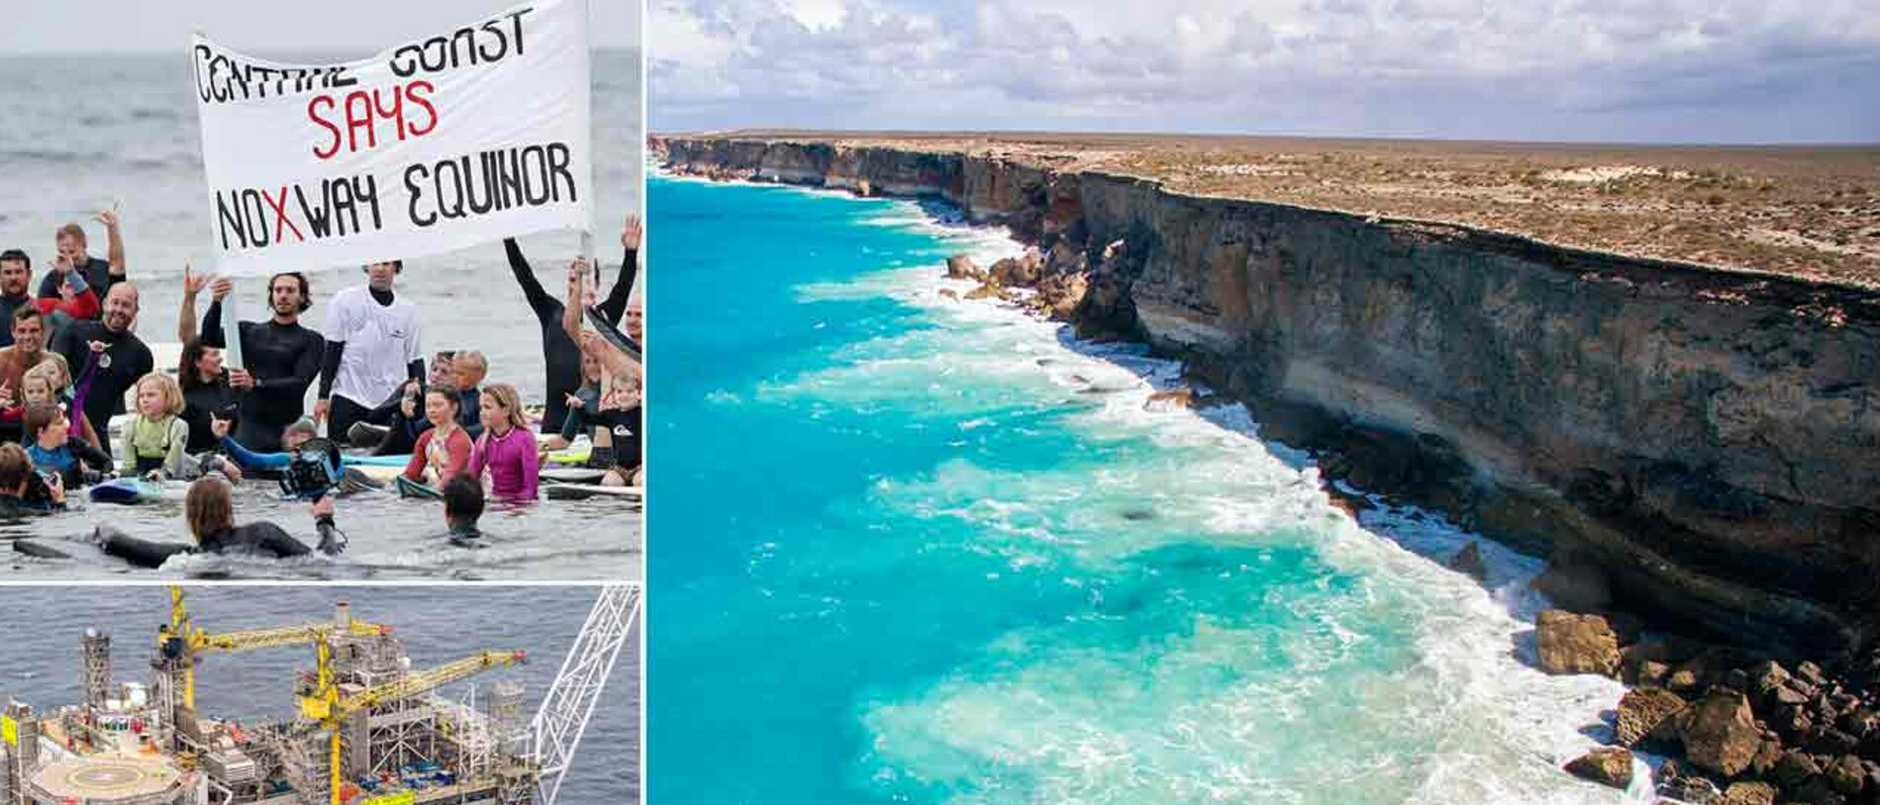 After years of work, another global oil company has pulled out of drilling in the Great Australian Bight, in a move welcomed as a victory for the environment.